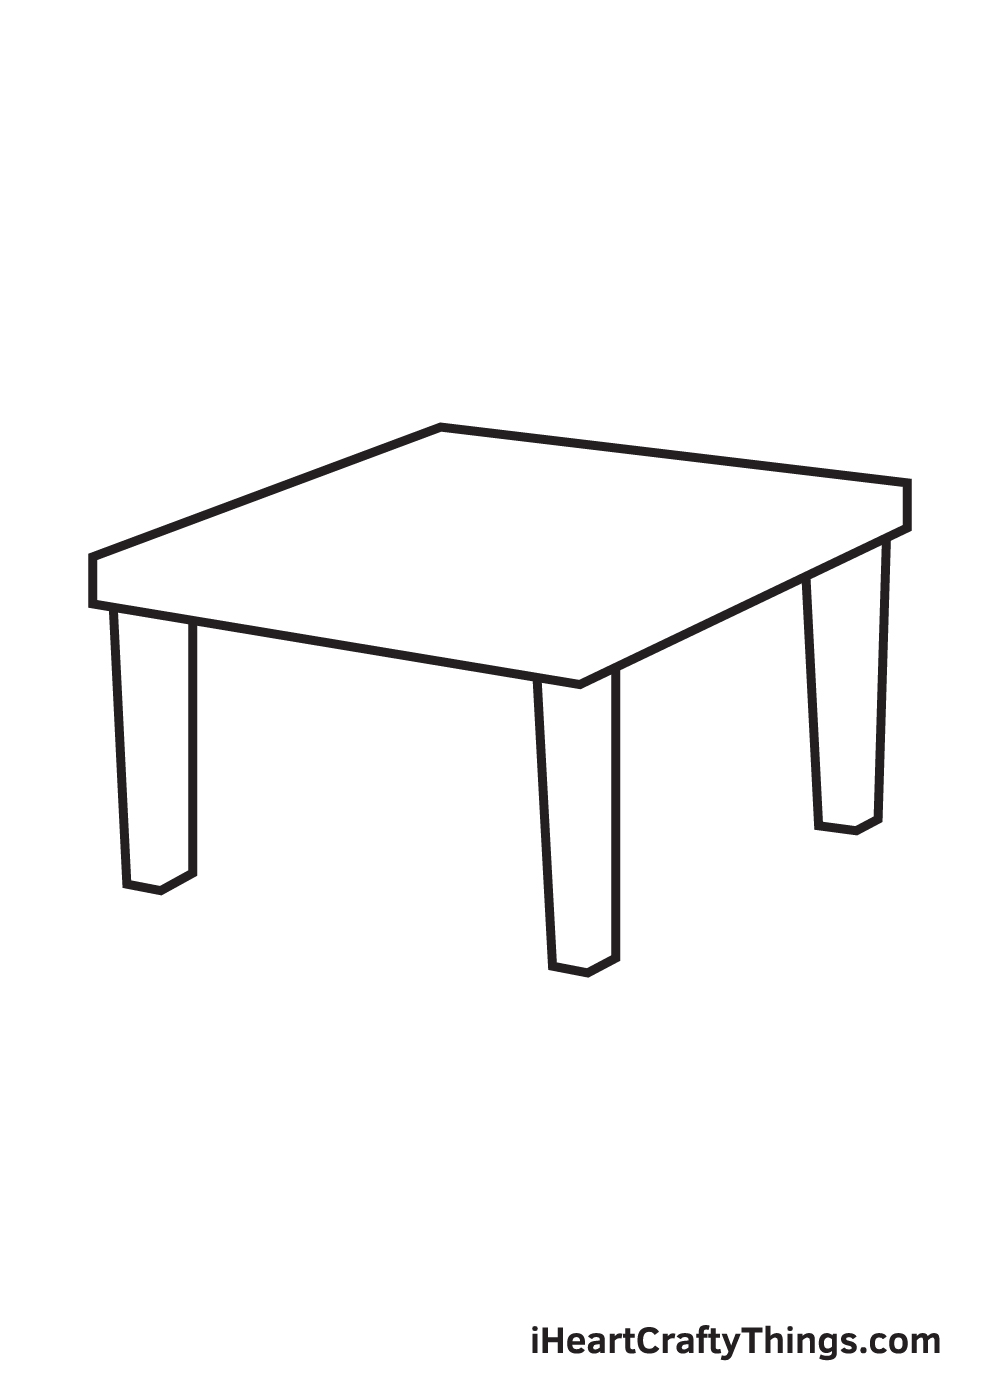 table drawing step 5